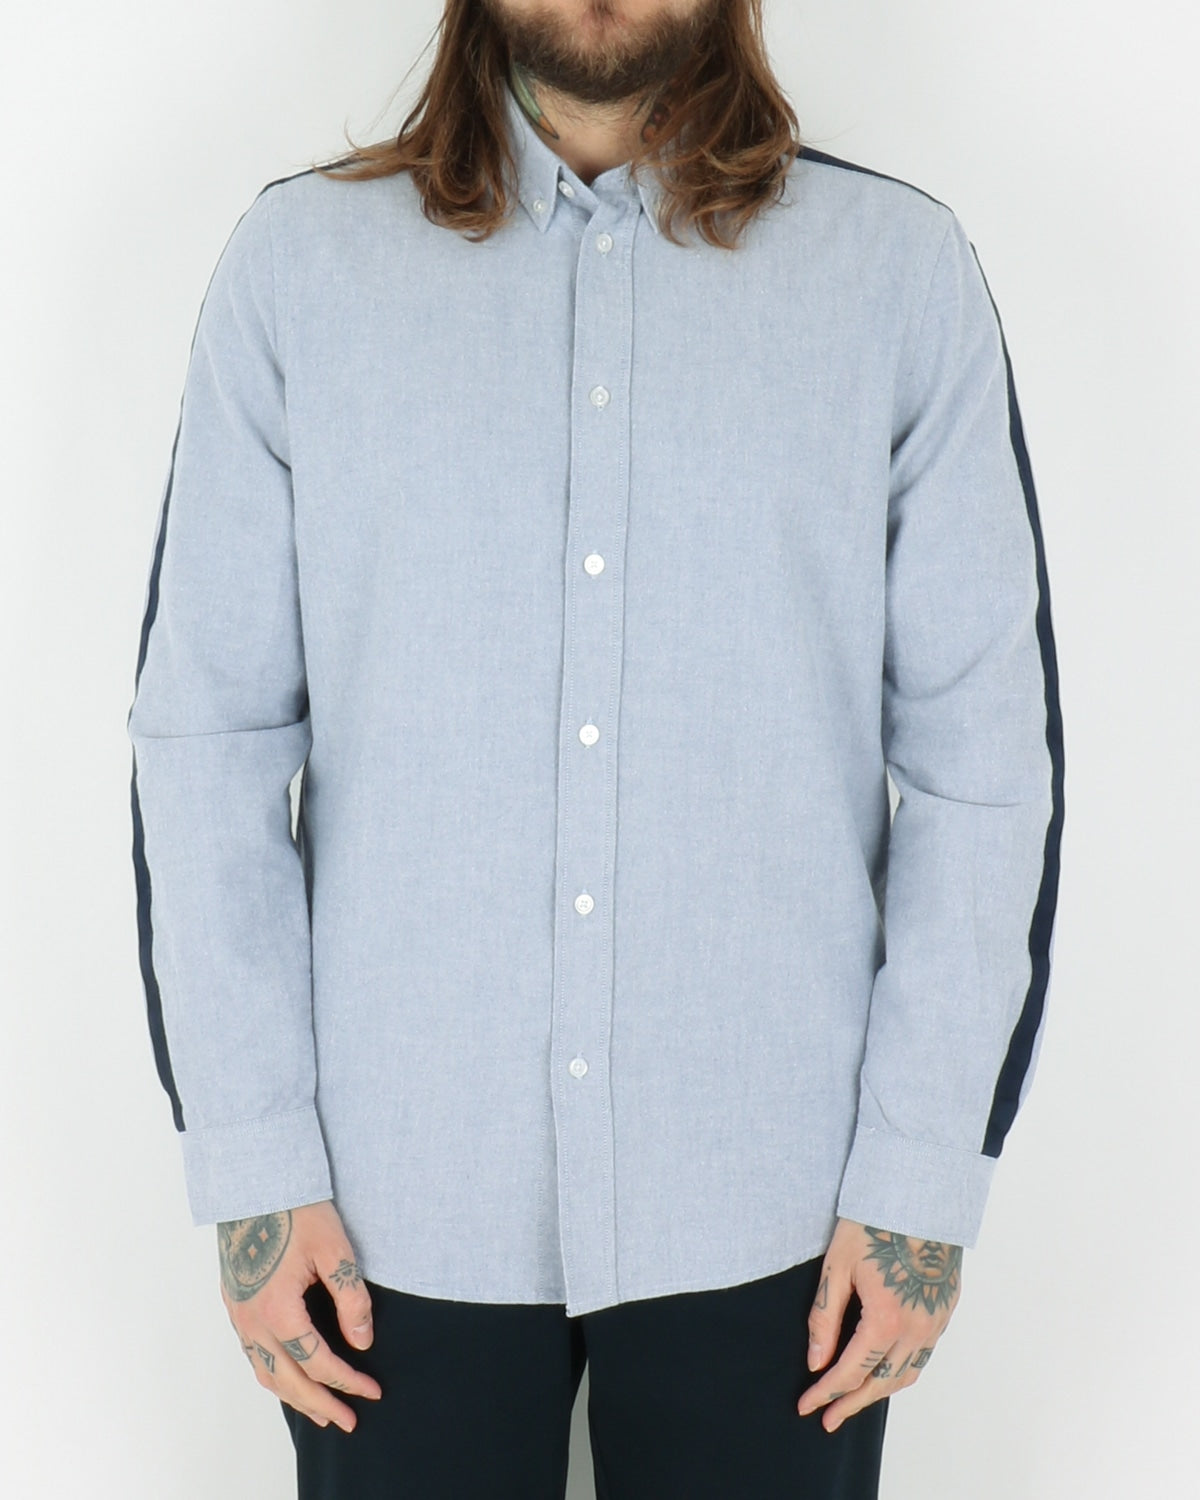 we are copenhagen_novak ls shirt_light blue_view_2_3